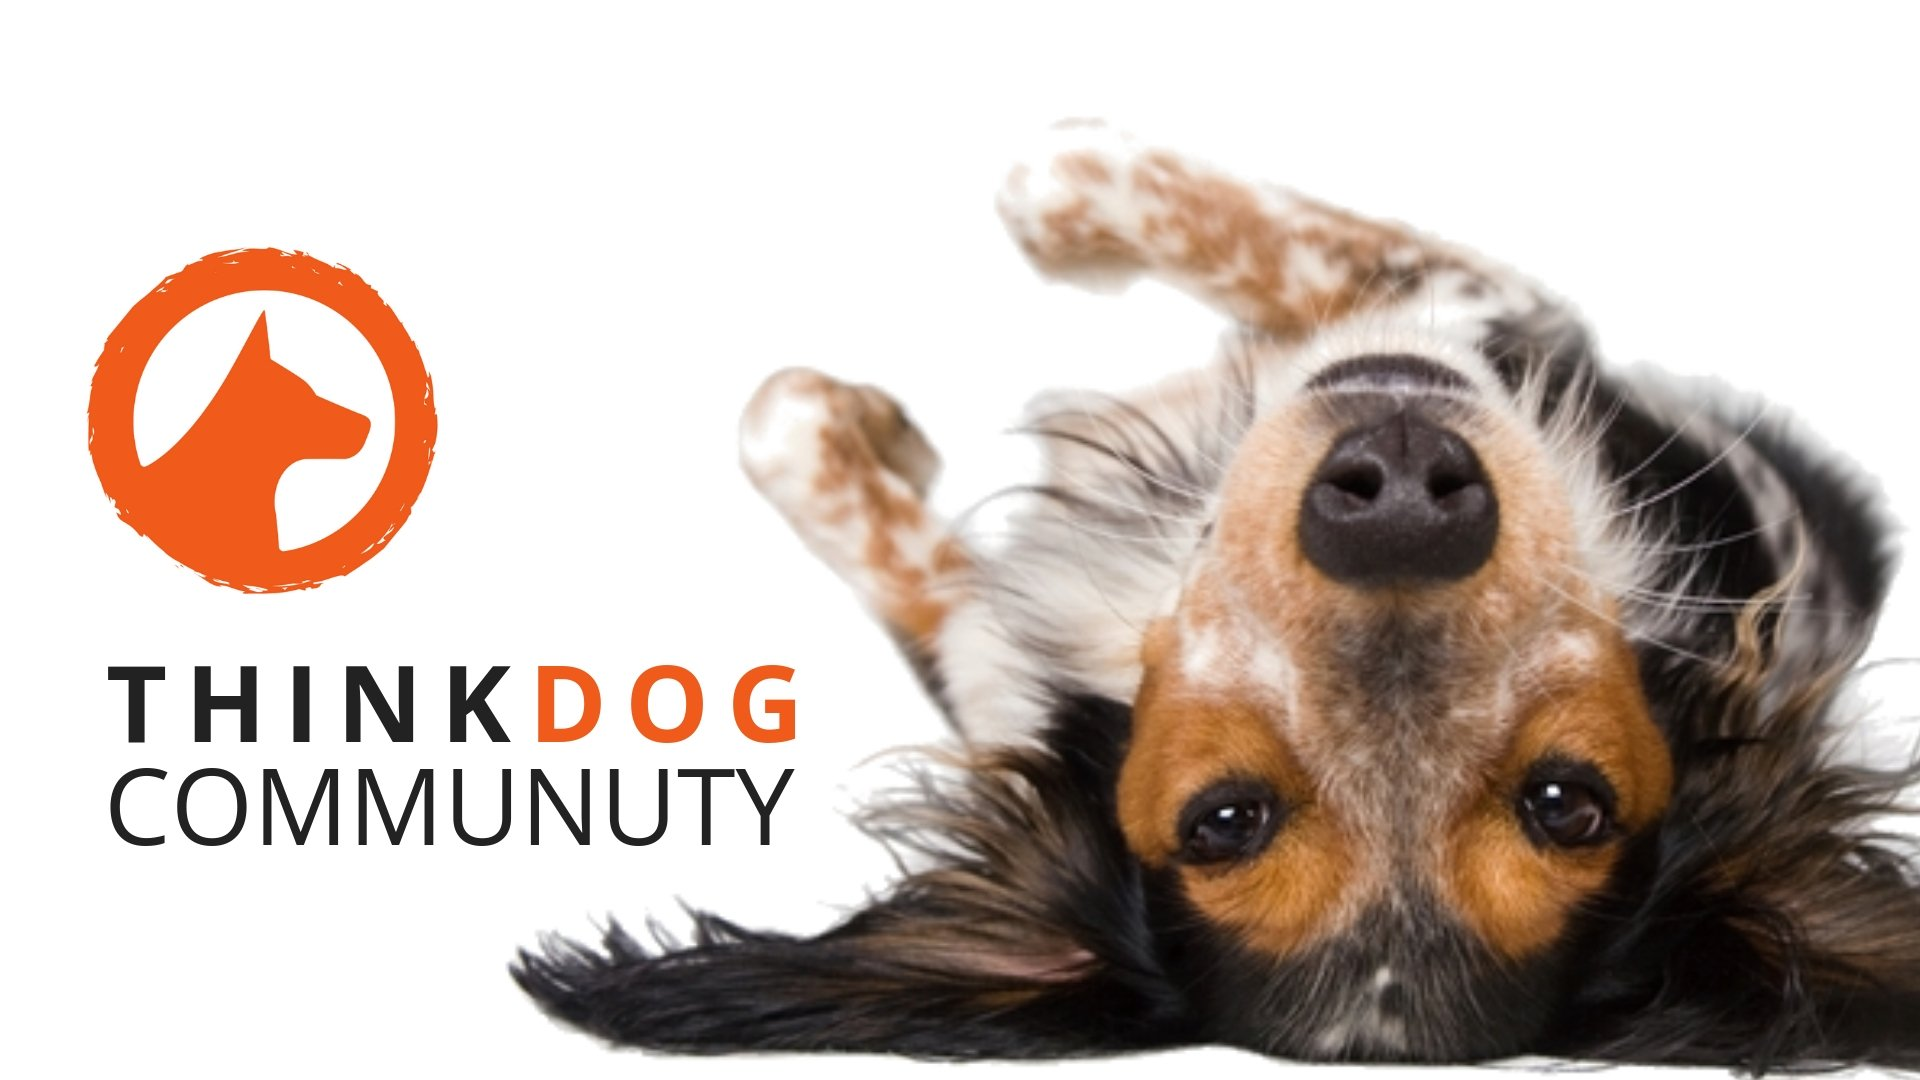 thinkdog community